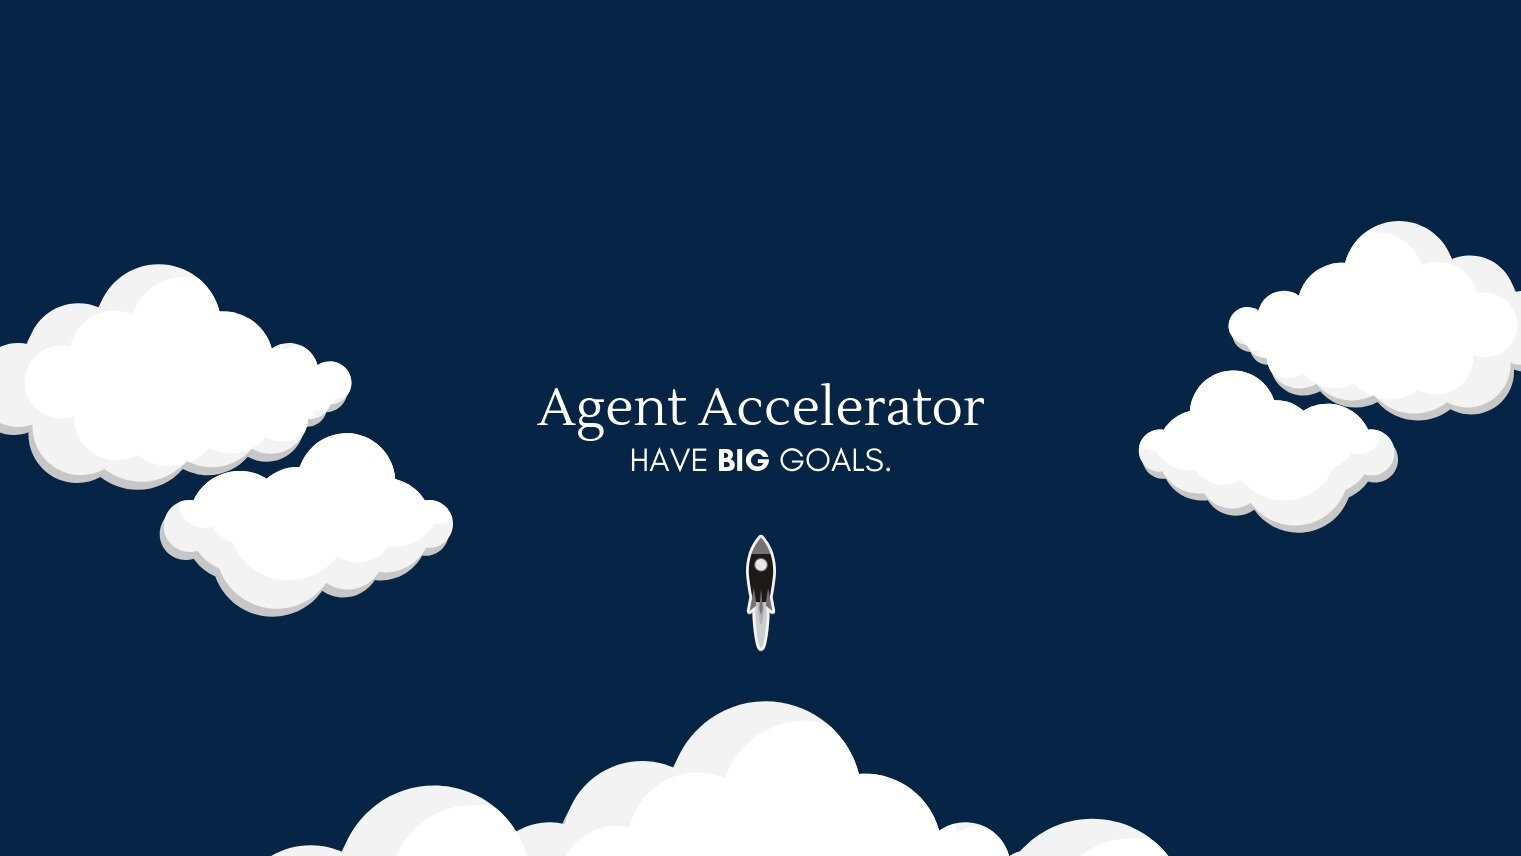 AGENT ACCELERATOR    For agents wanting to turn their business into a predictable revenue generator.   Agent Accelerator transforms agents businesses into efficient & predictable revenue generators by balancing traditional and modern sales techniques.